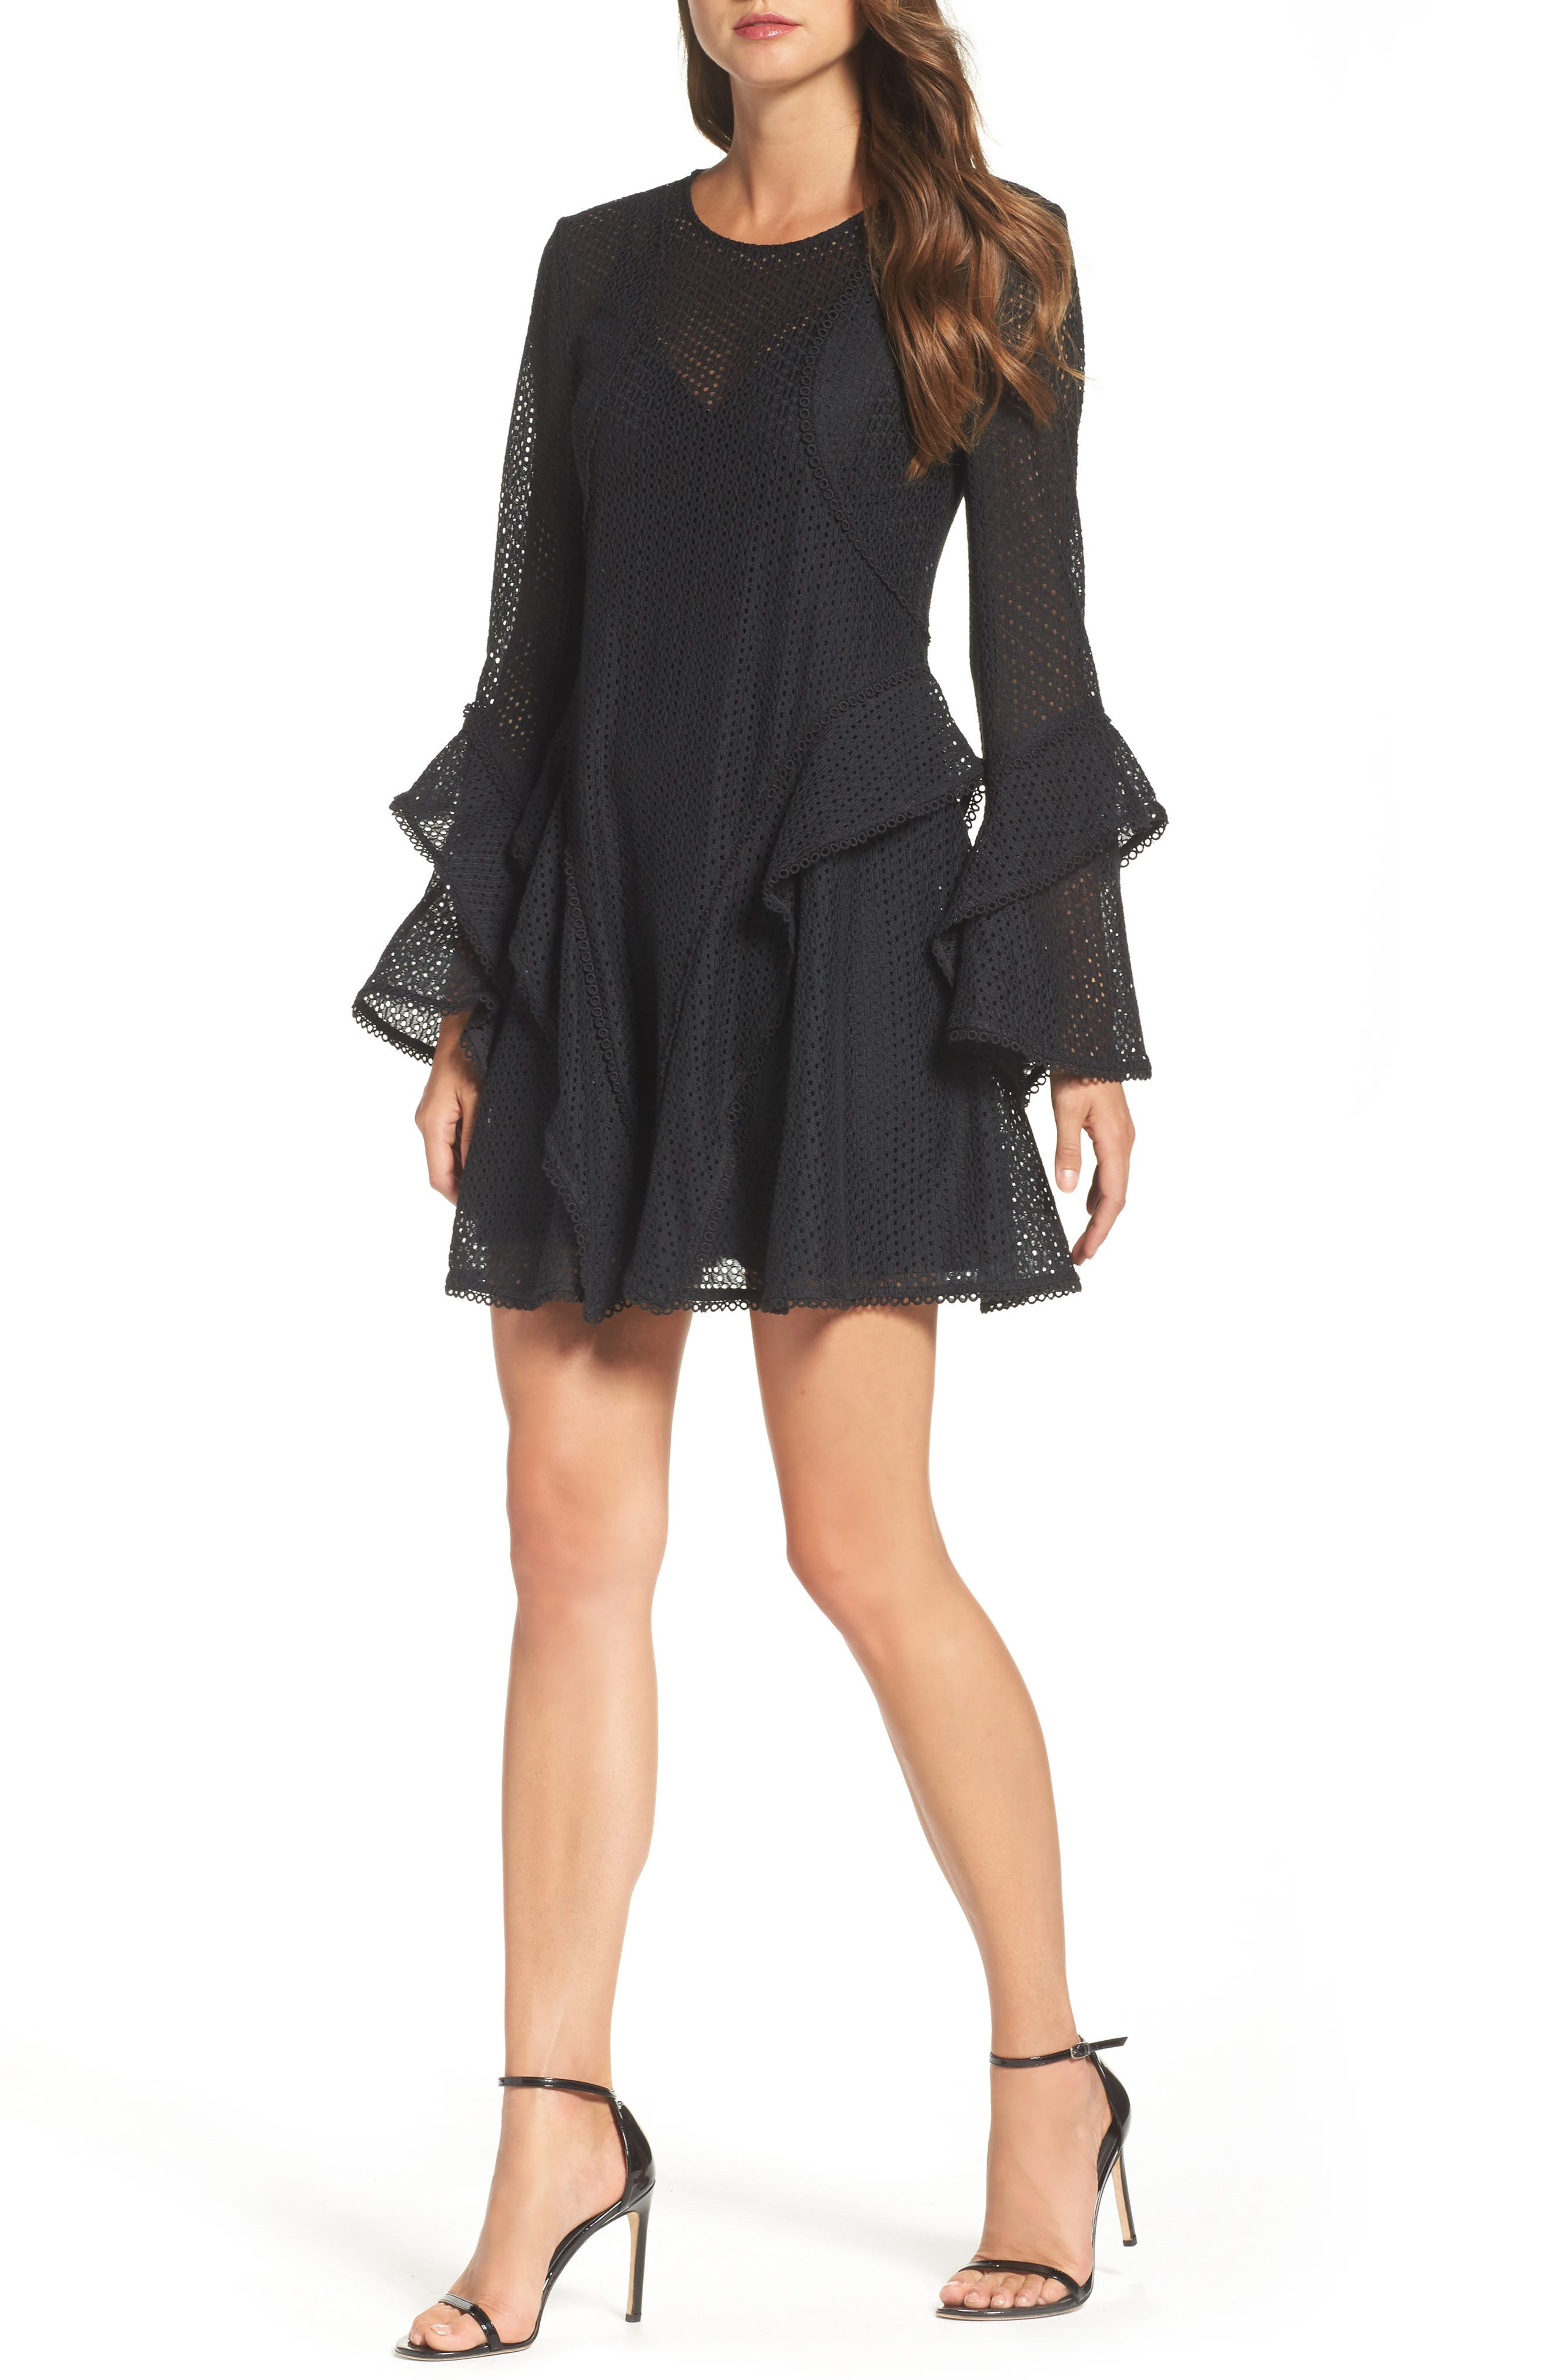 Aspire Lace Bell Sleeve Minidress,                         Main,                         color, Black